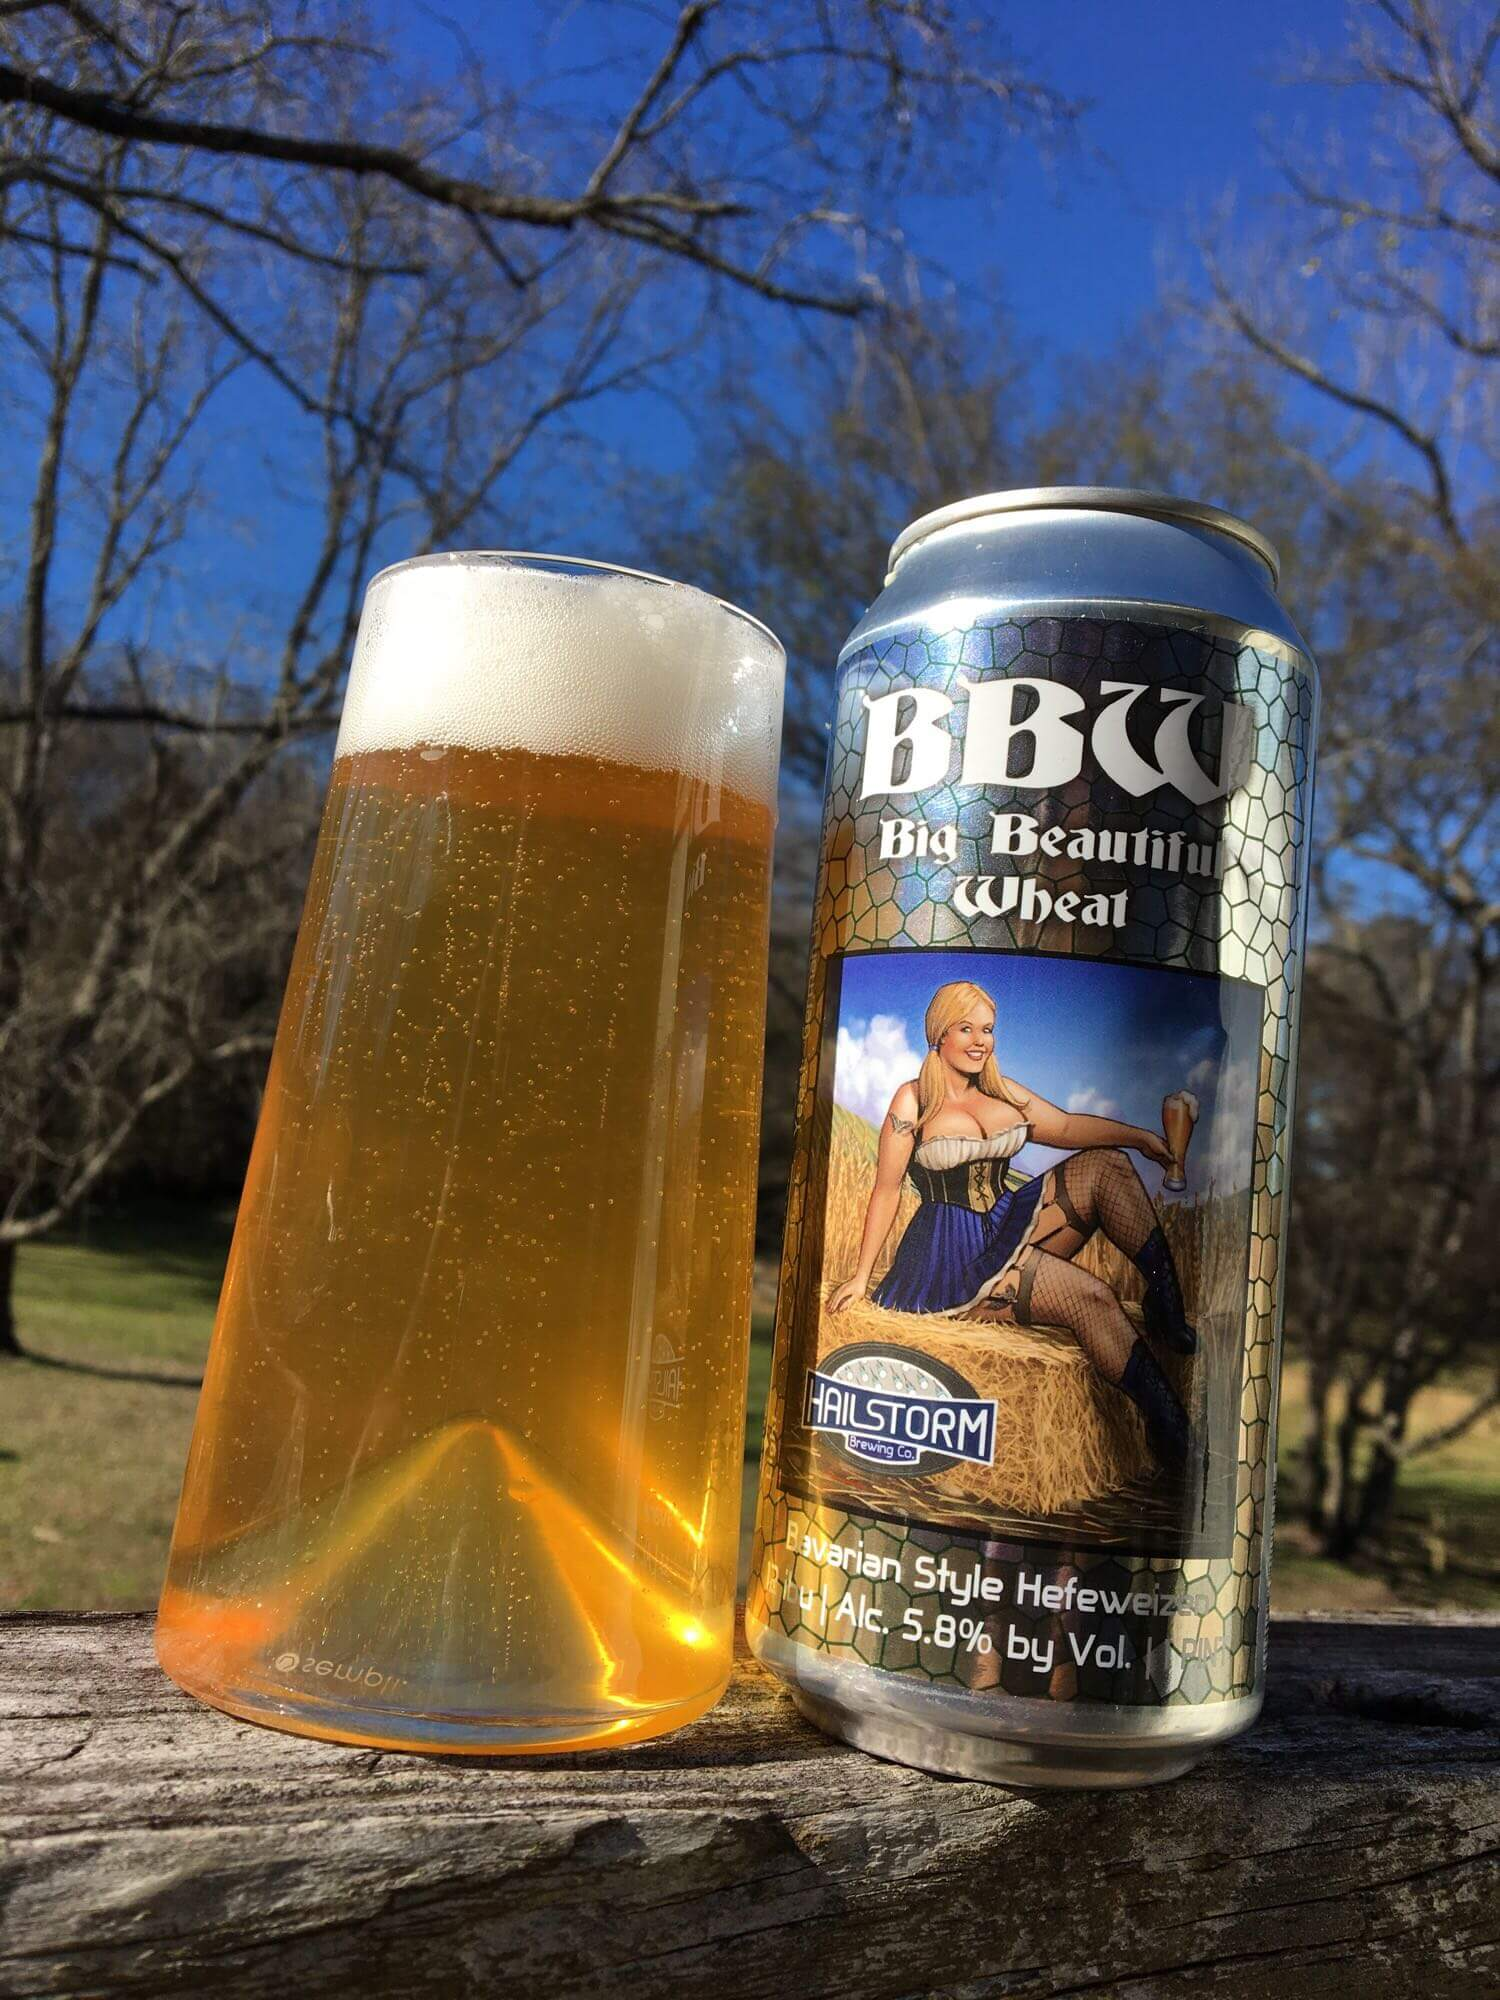 Hailstorm — BBW (Big Beautiful Wheat)